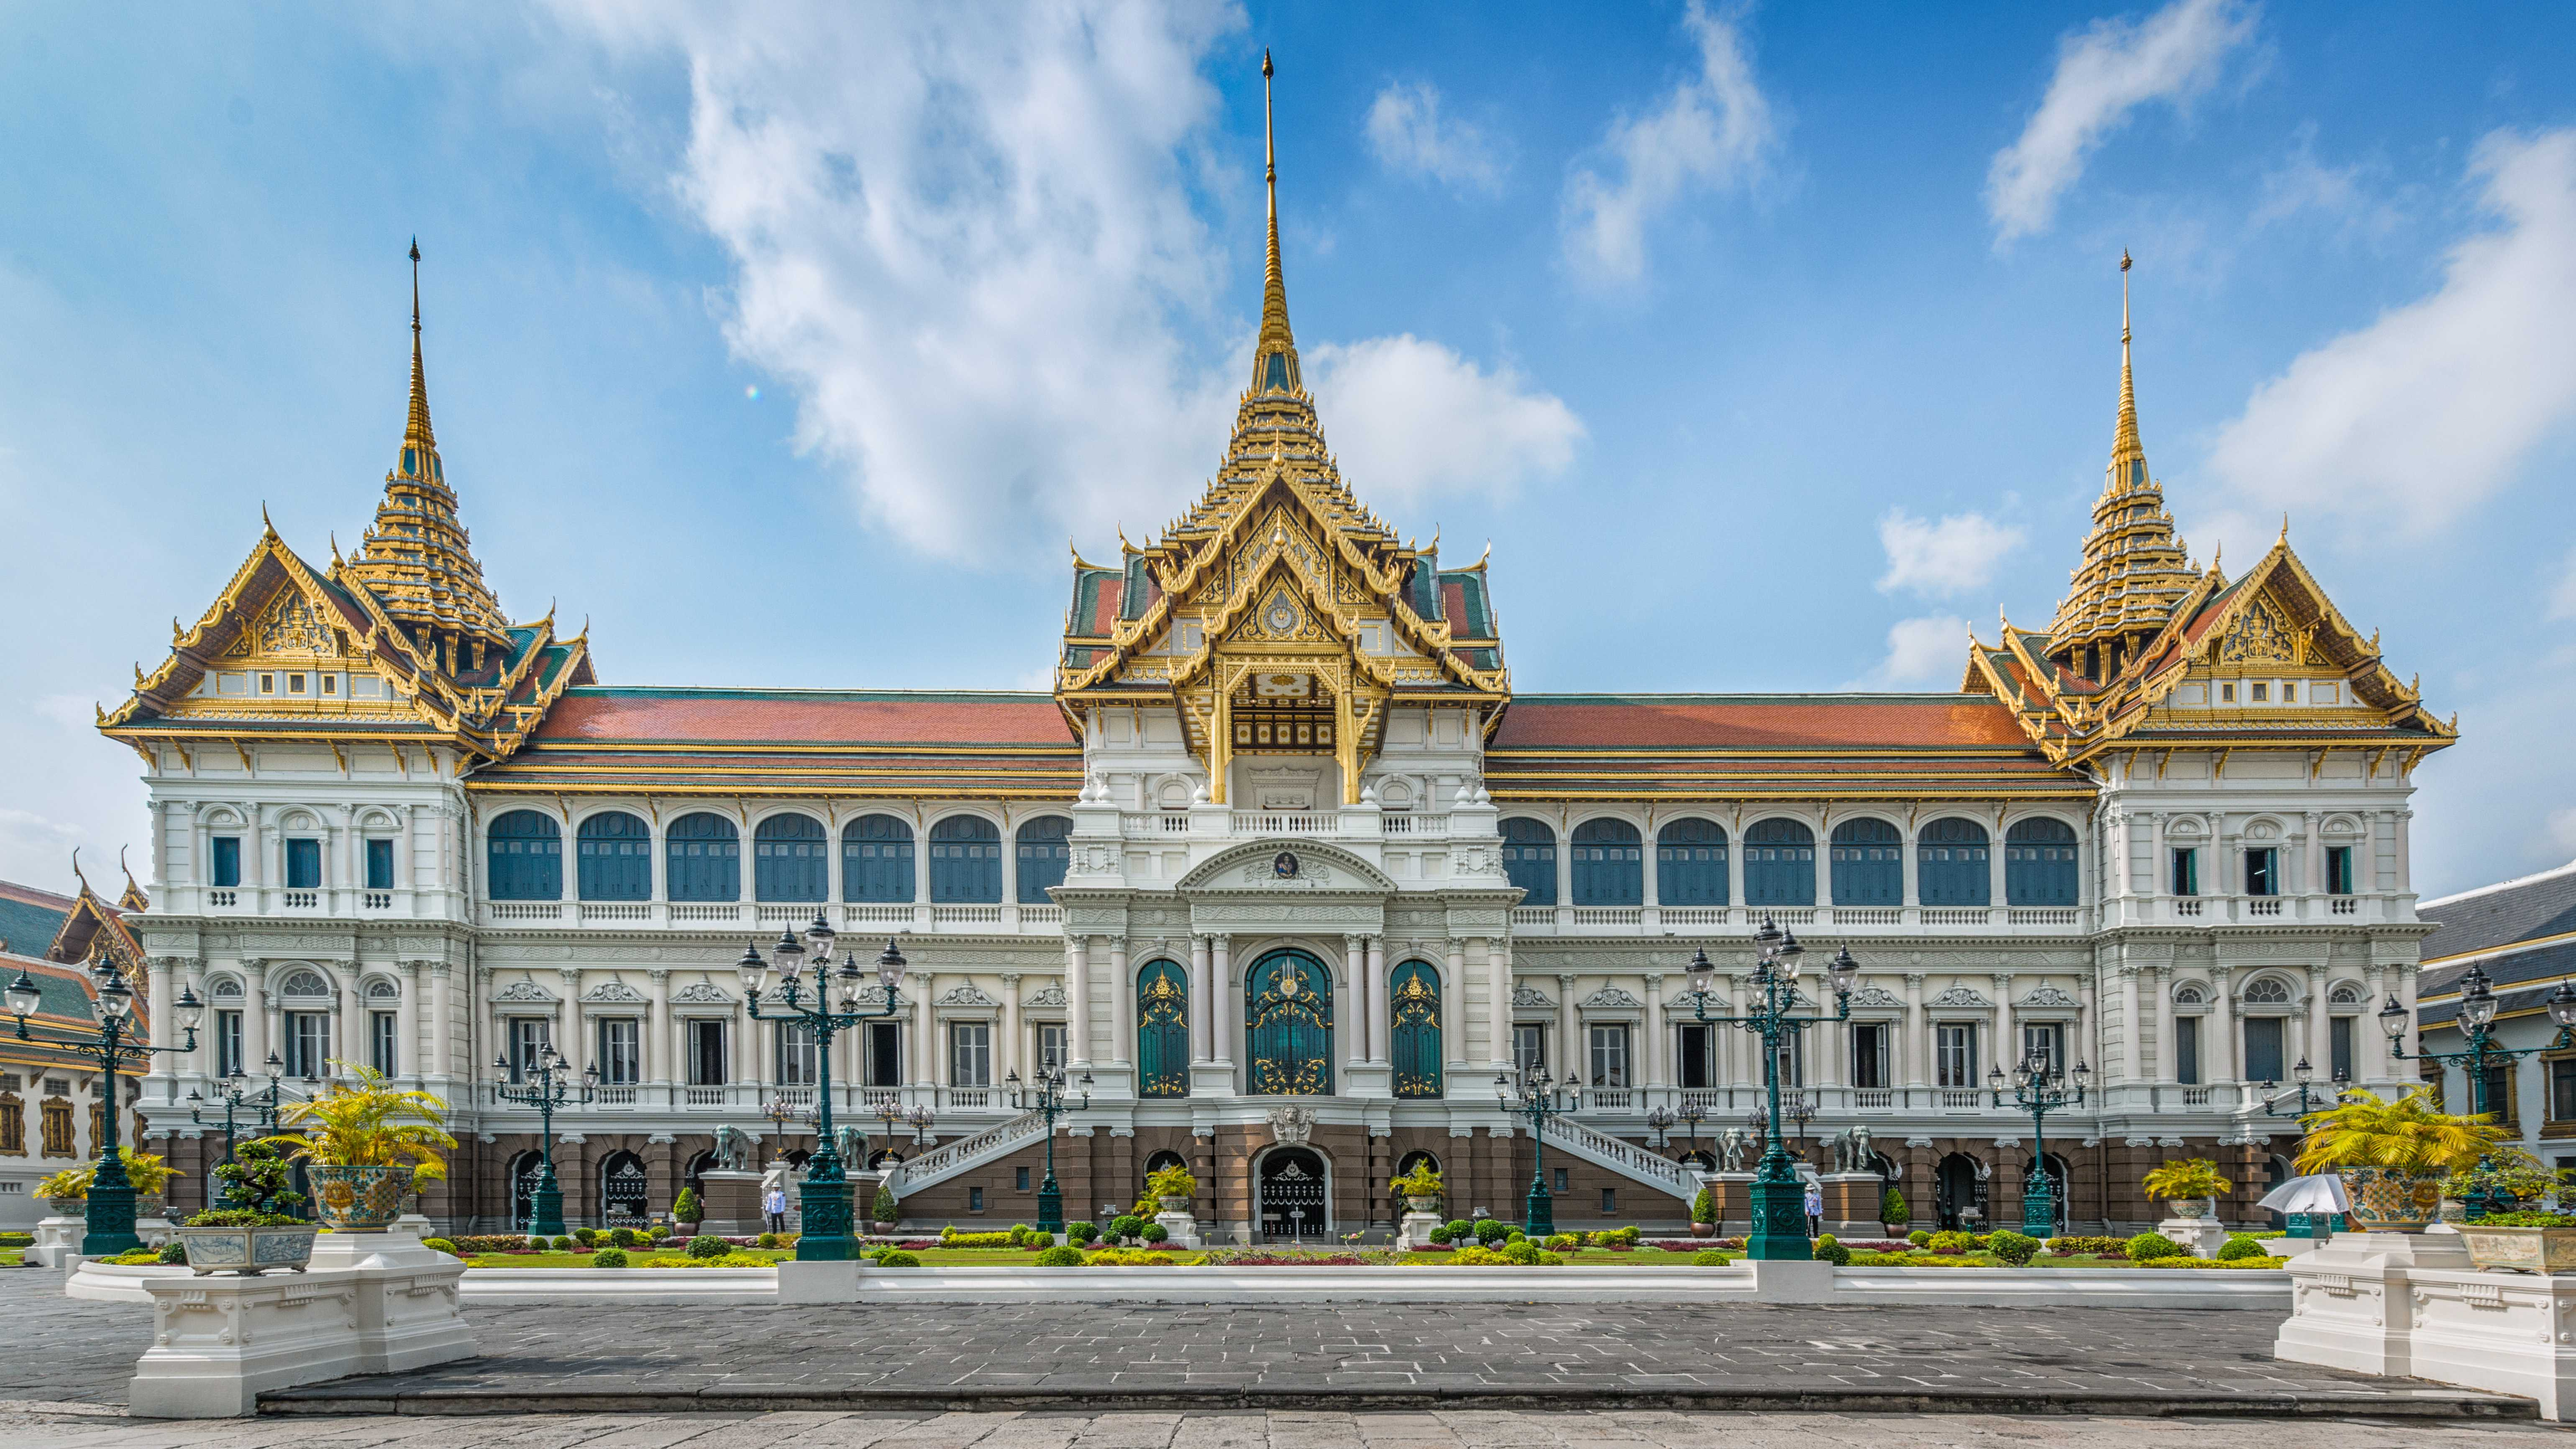 Buckingham Palace Facts Top 7 Sights For Every Muslim Traveler To Bankgkok